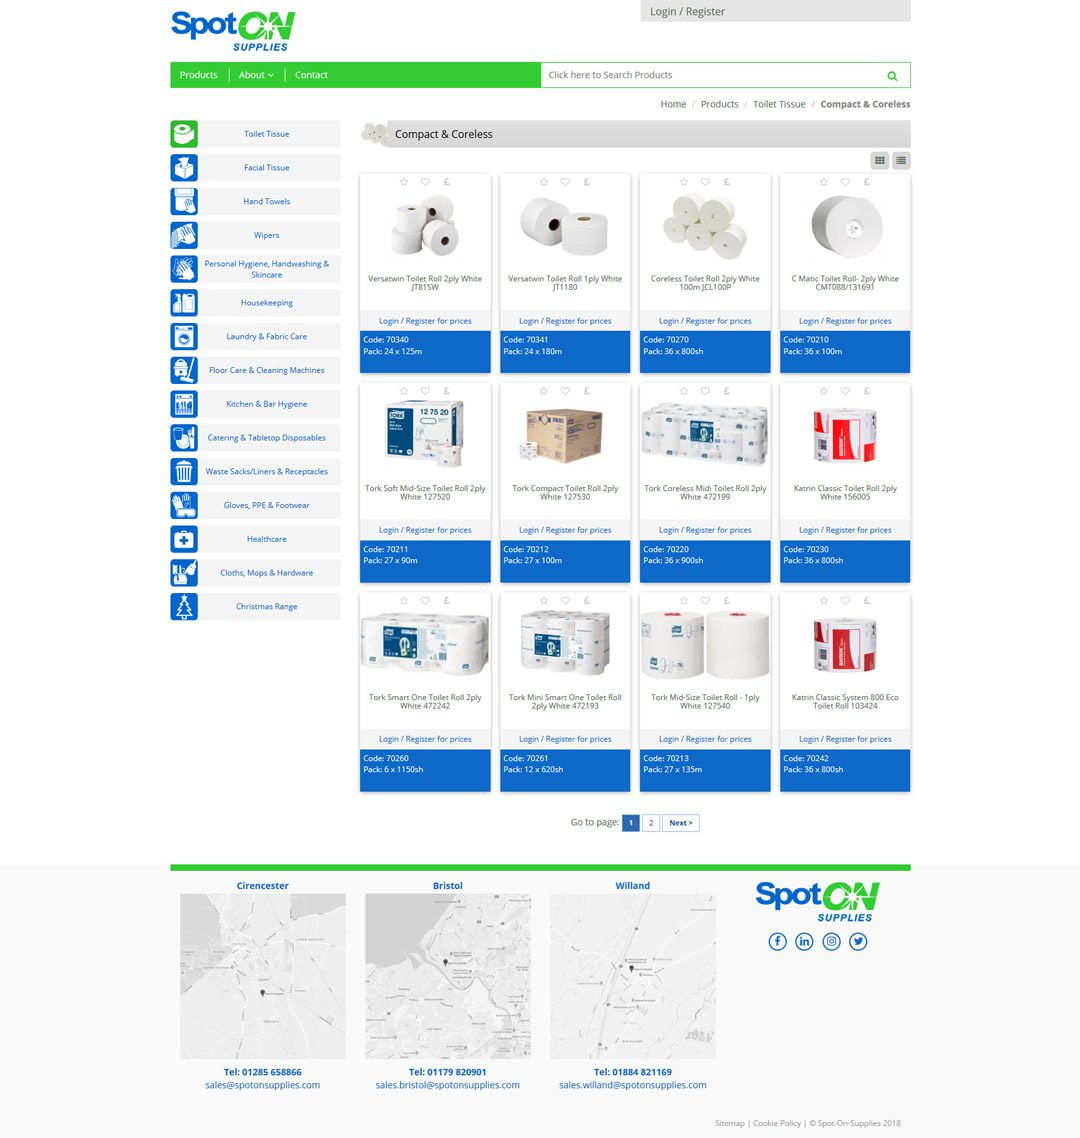 Spot On website by Practically.io - Experts in web design and development